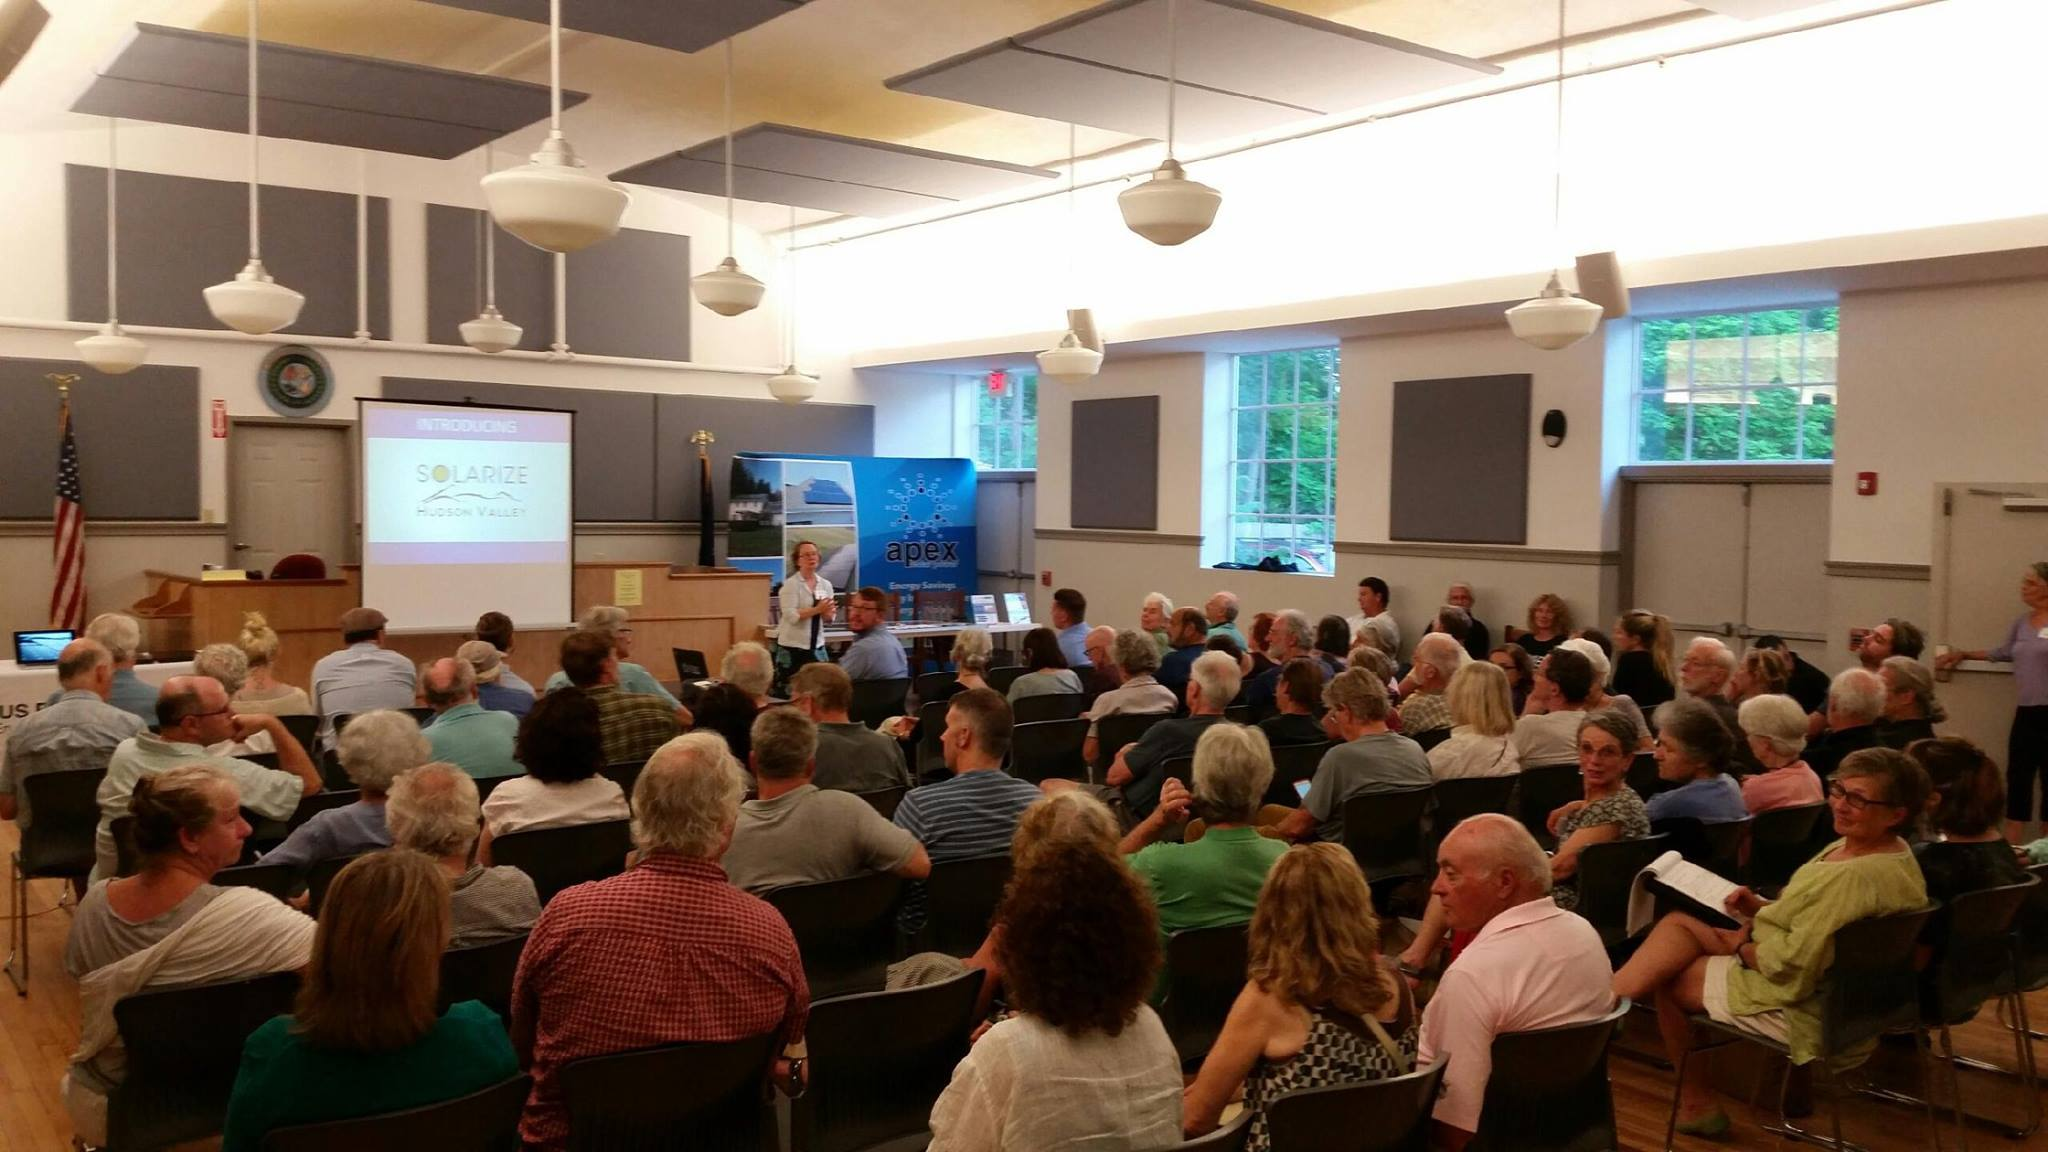 Over 80 people attended this meeting held by Woodstock NY Transition's Energy Group in 2015. As a result, 40 enrolled in their Solarize Woodstock program to bulk-purchase roof-mounted solar photovoltaic systems at a reduced price.